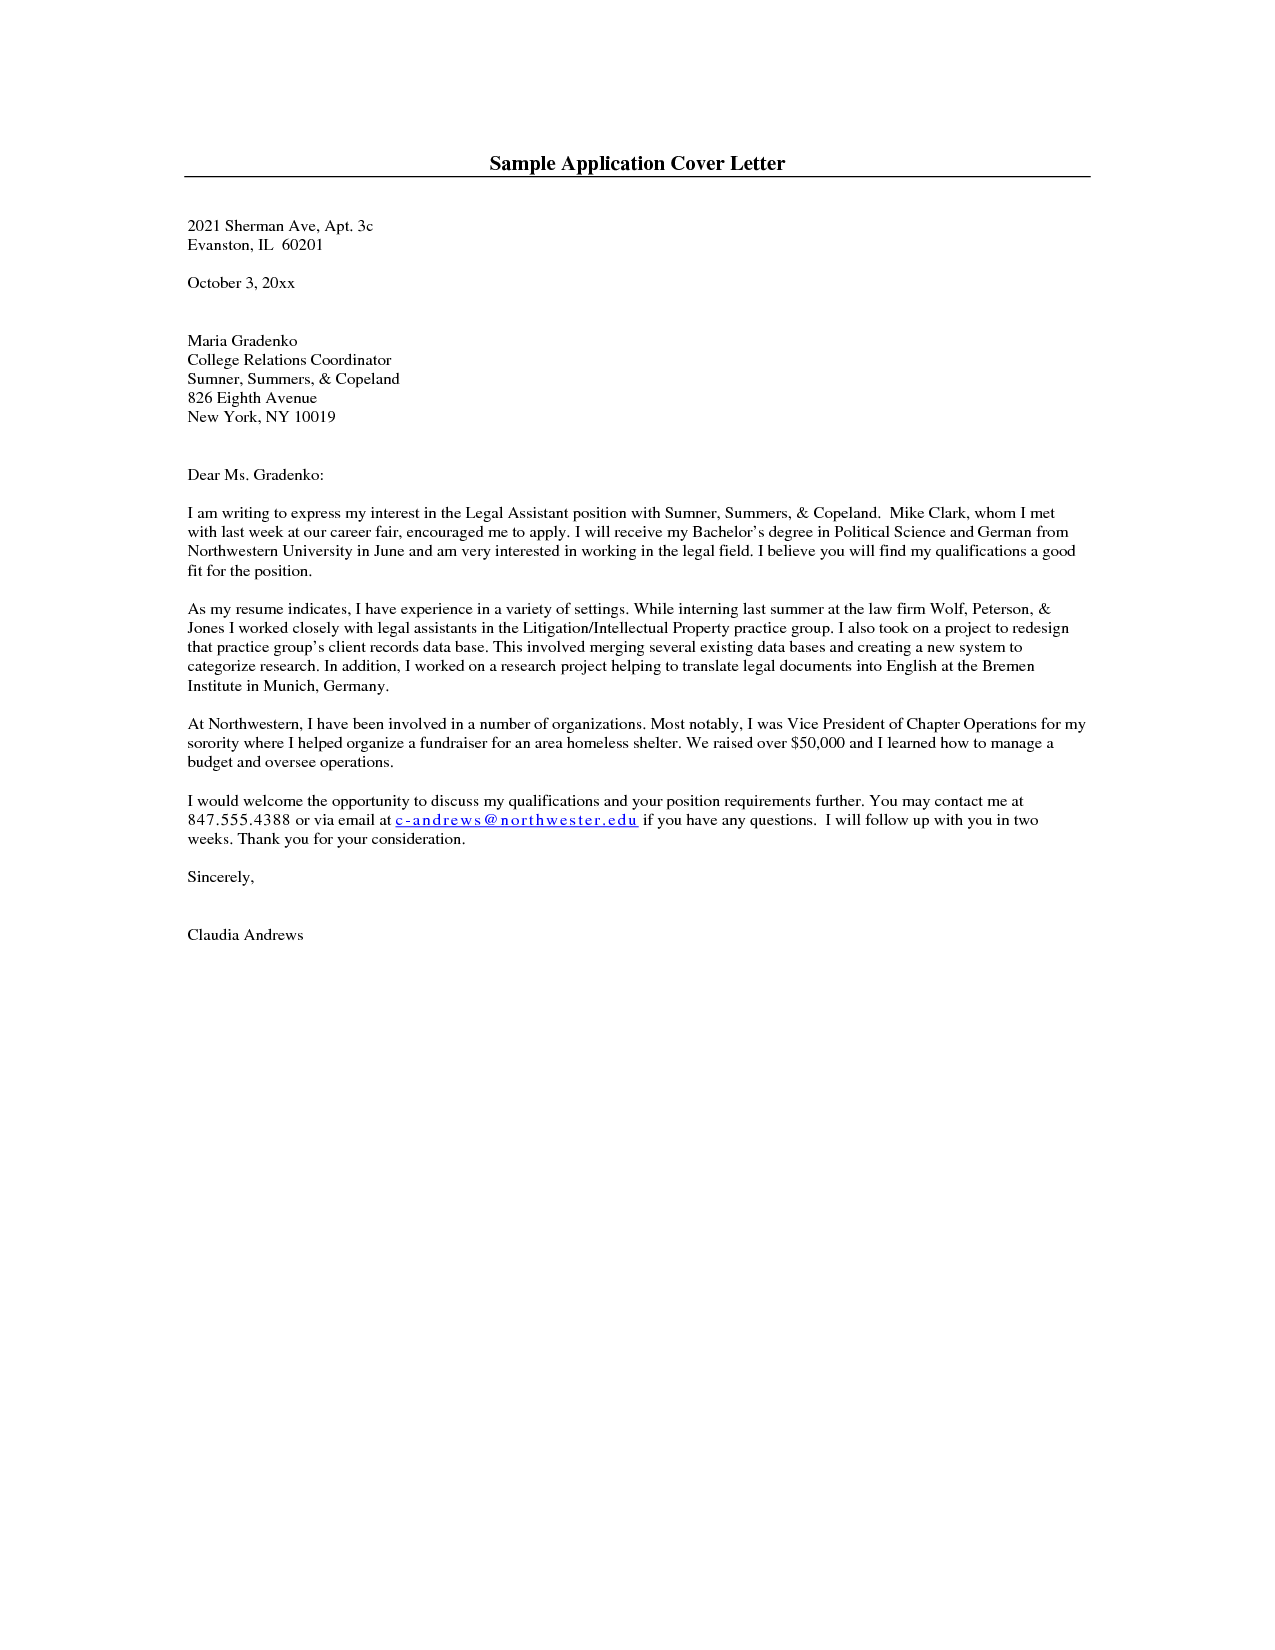 Letter Free Cover Sample Letters Application With Format  Sample Letter Of Interest